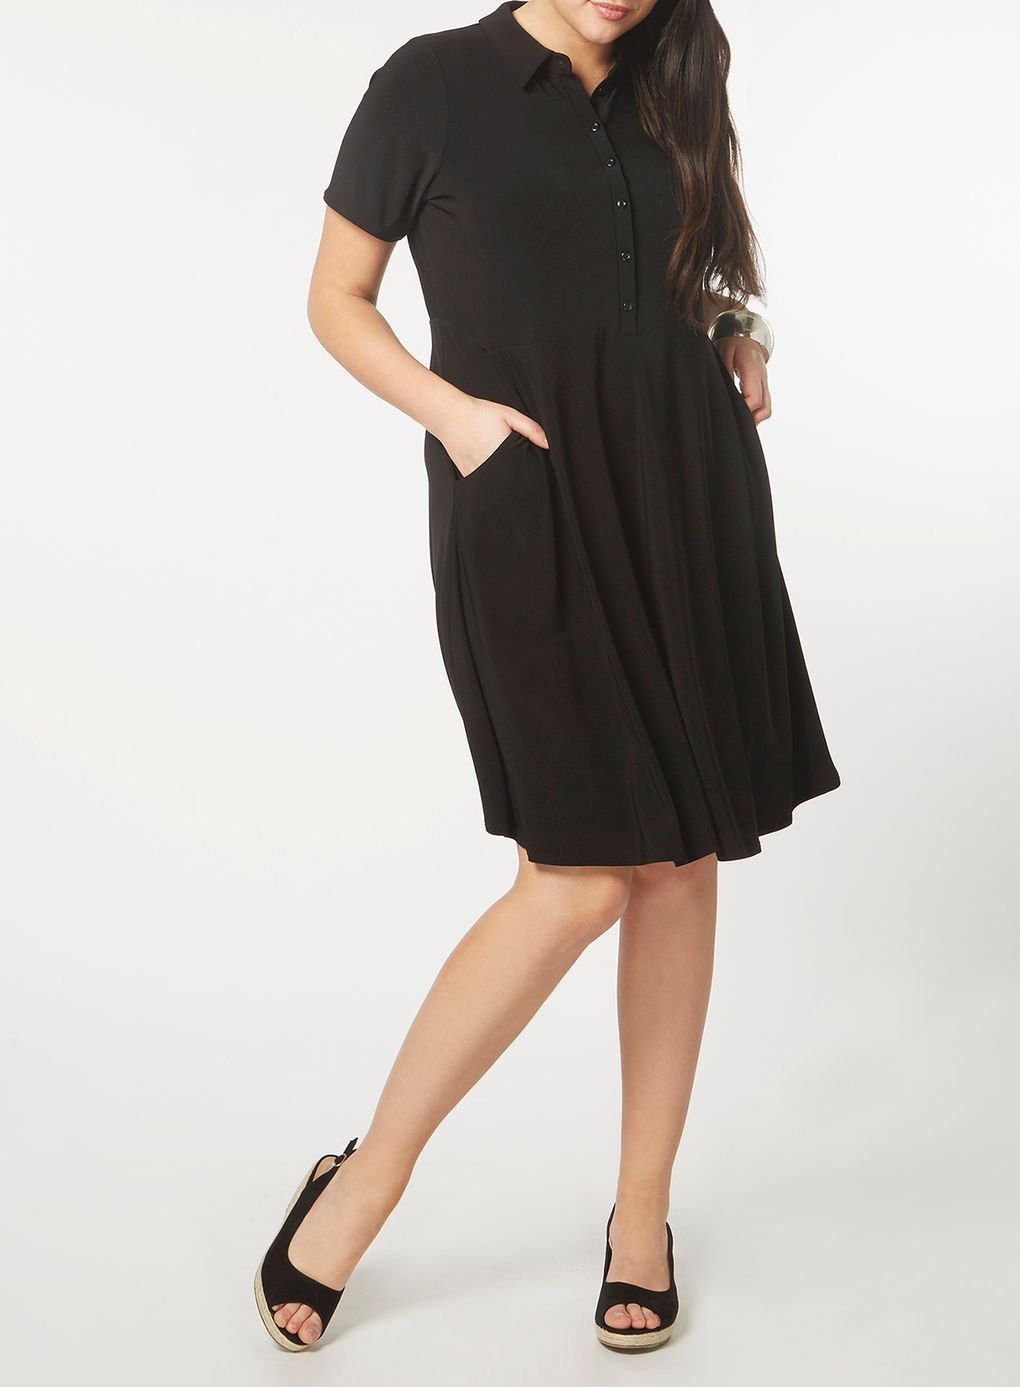 Black fit and flare shirt dress affiliate flare shirt